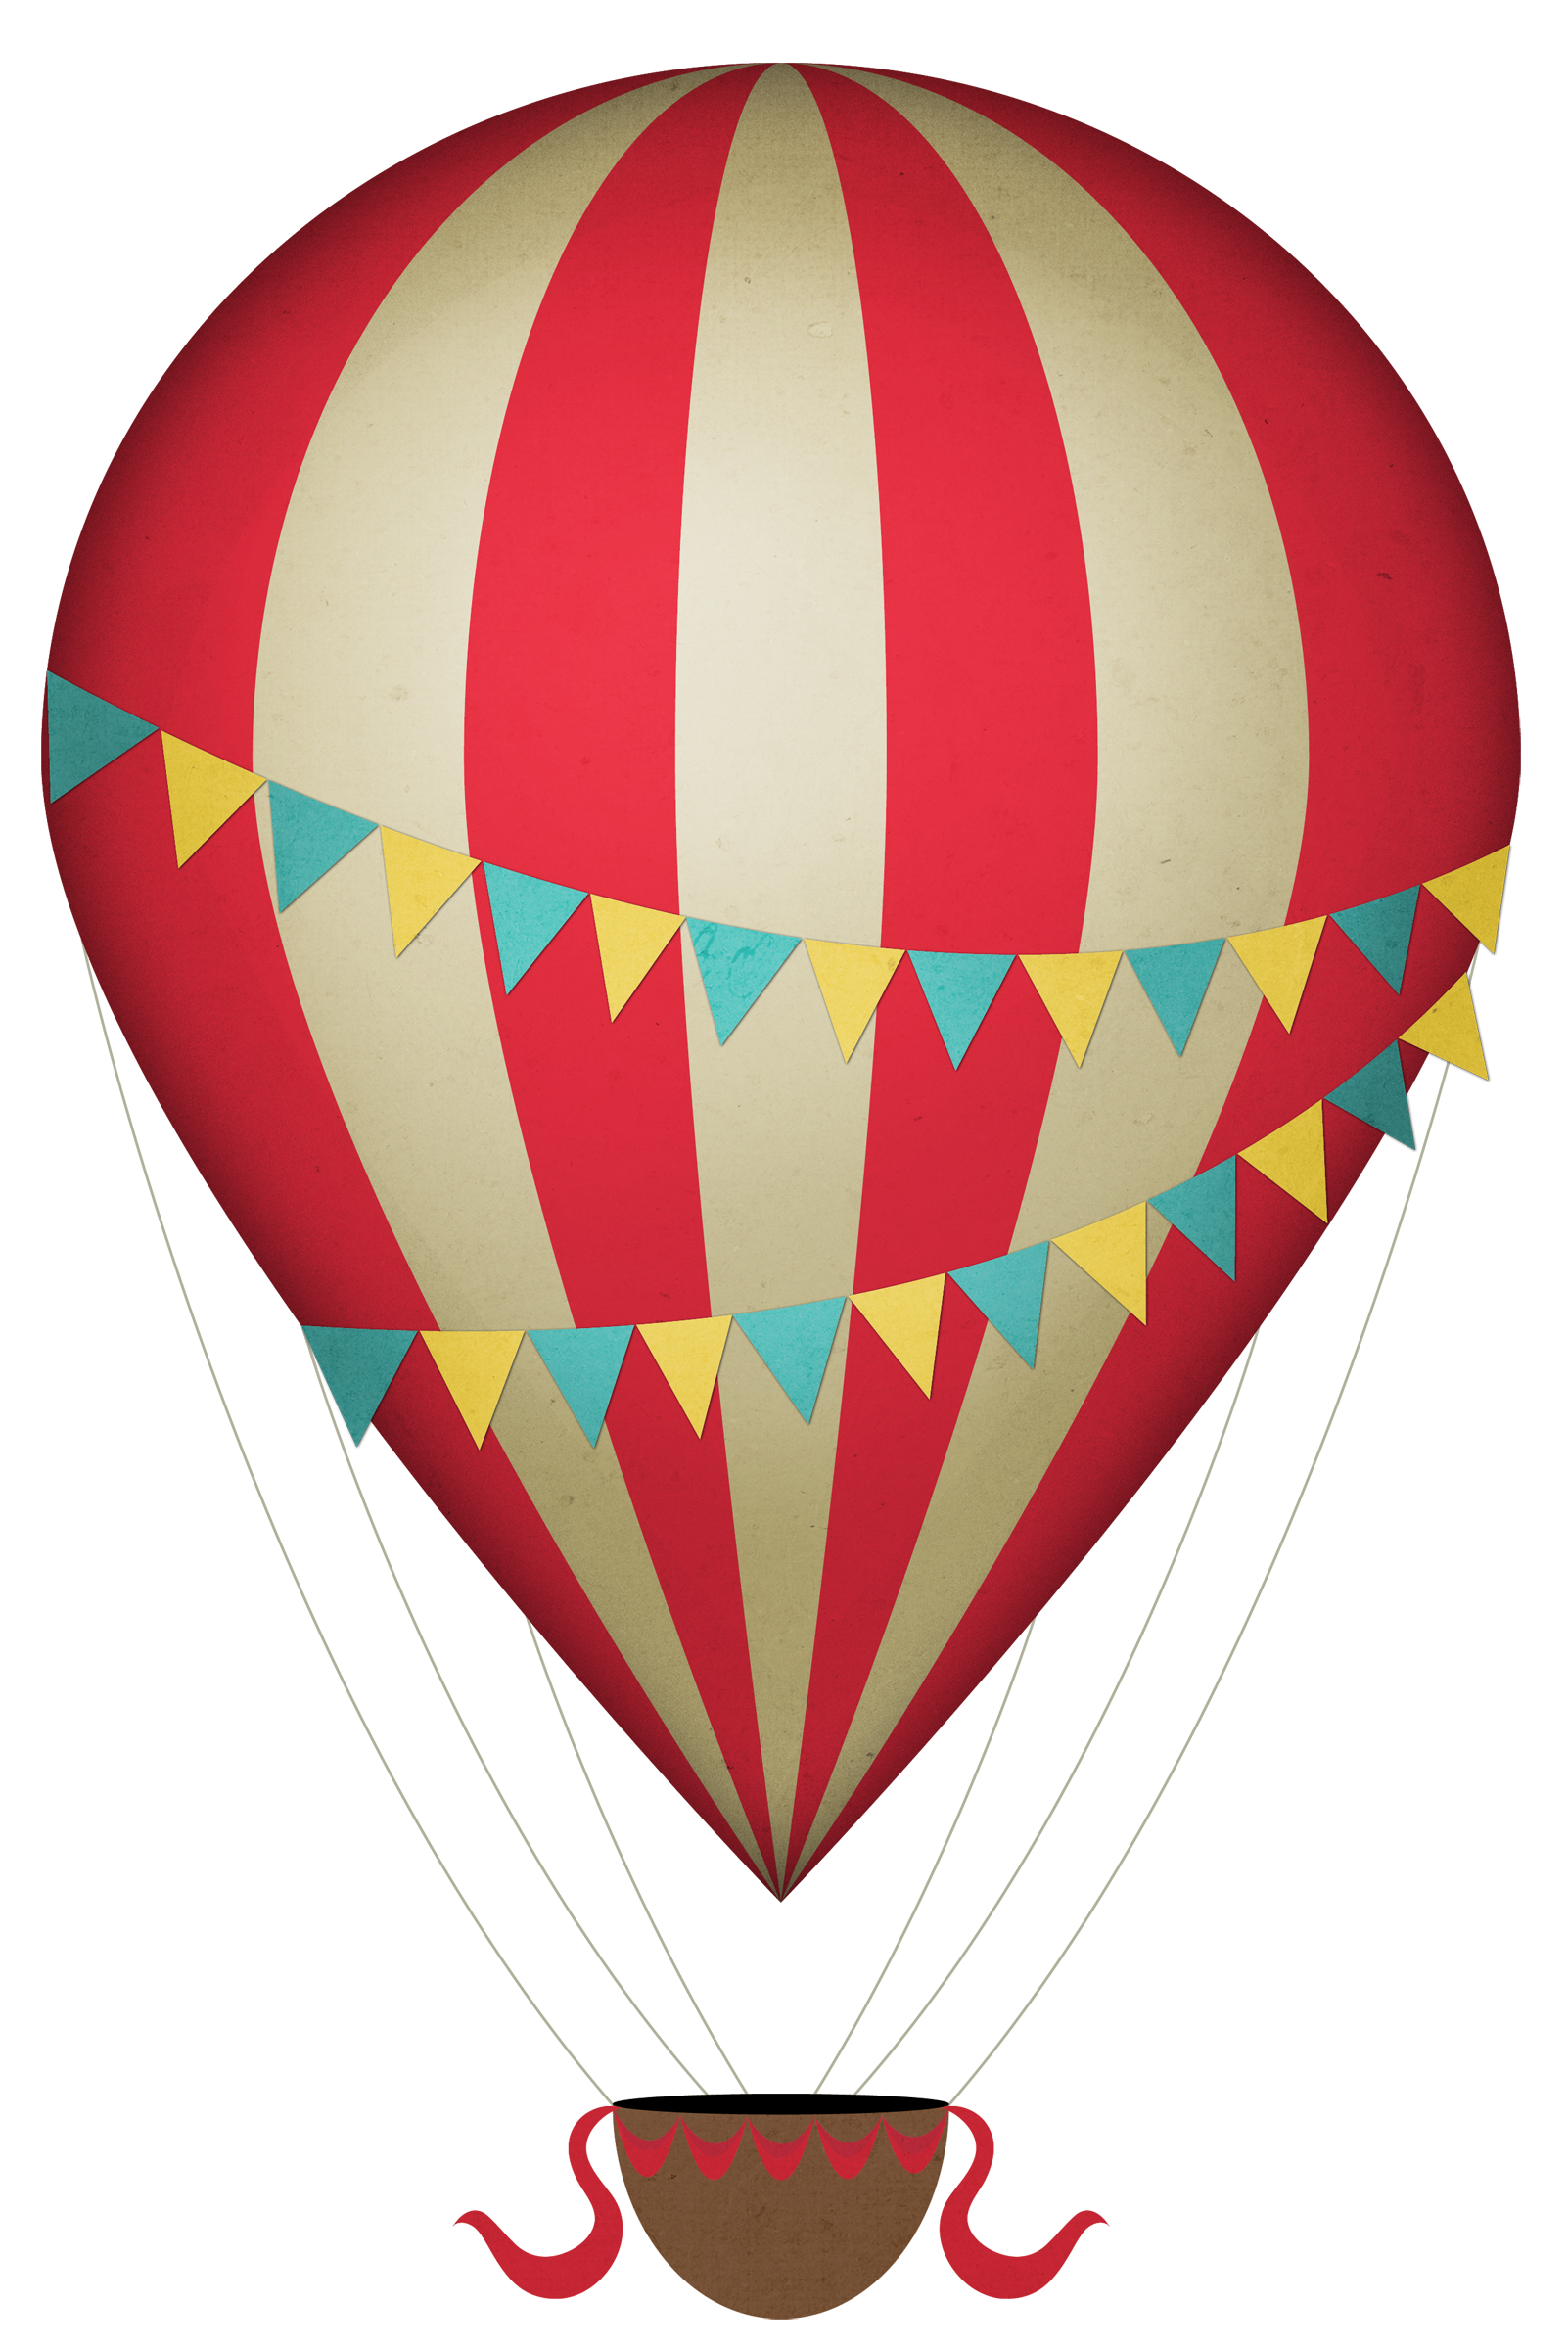 vintage%20hot%20air%20balloon%20clipart.